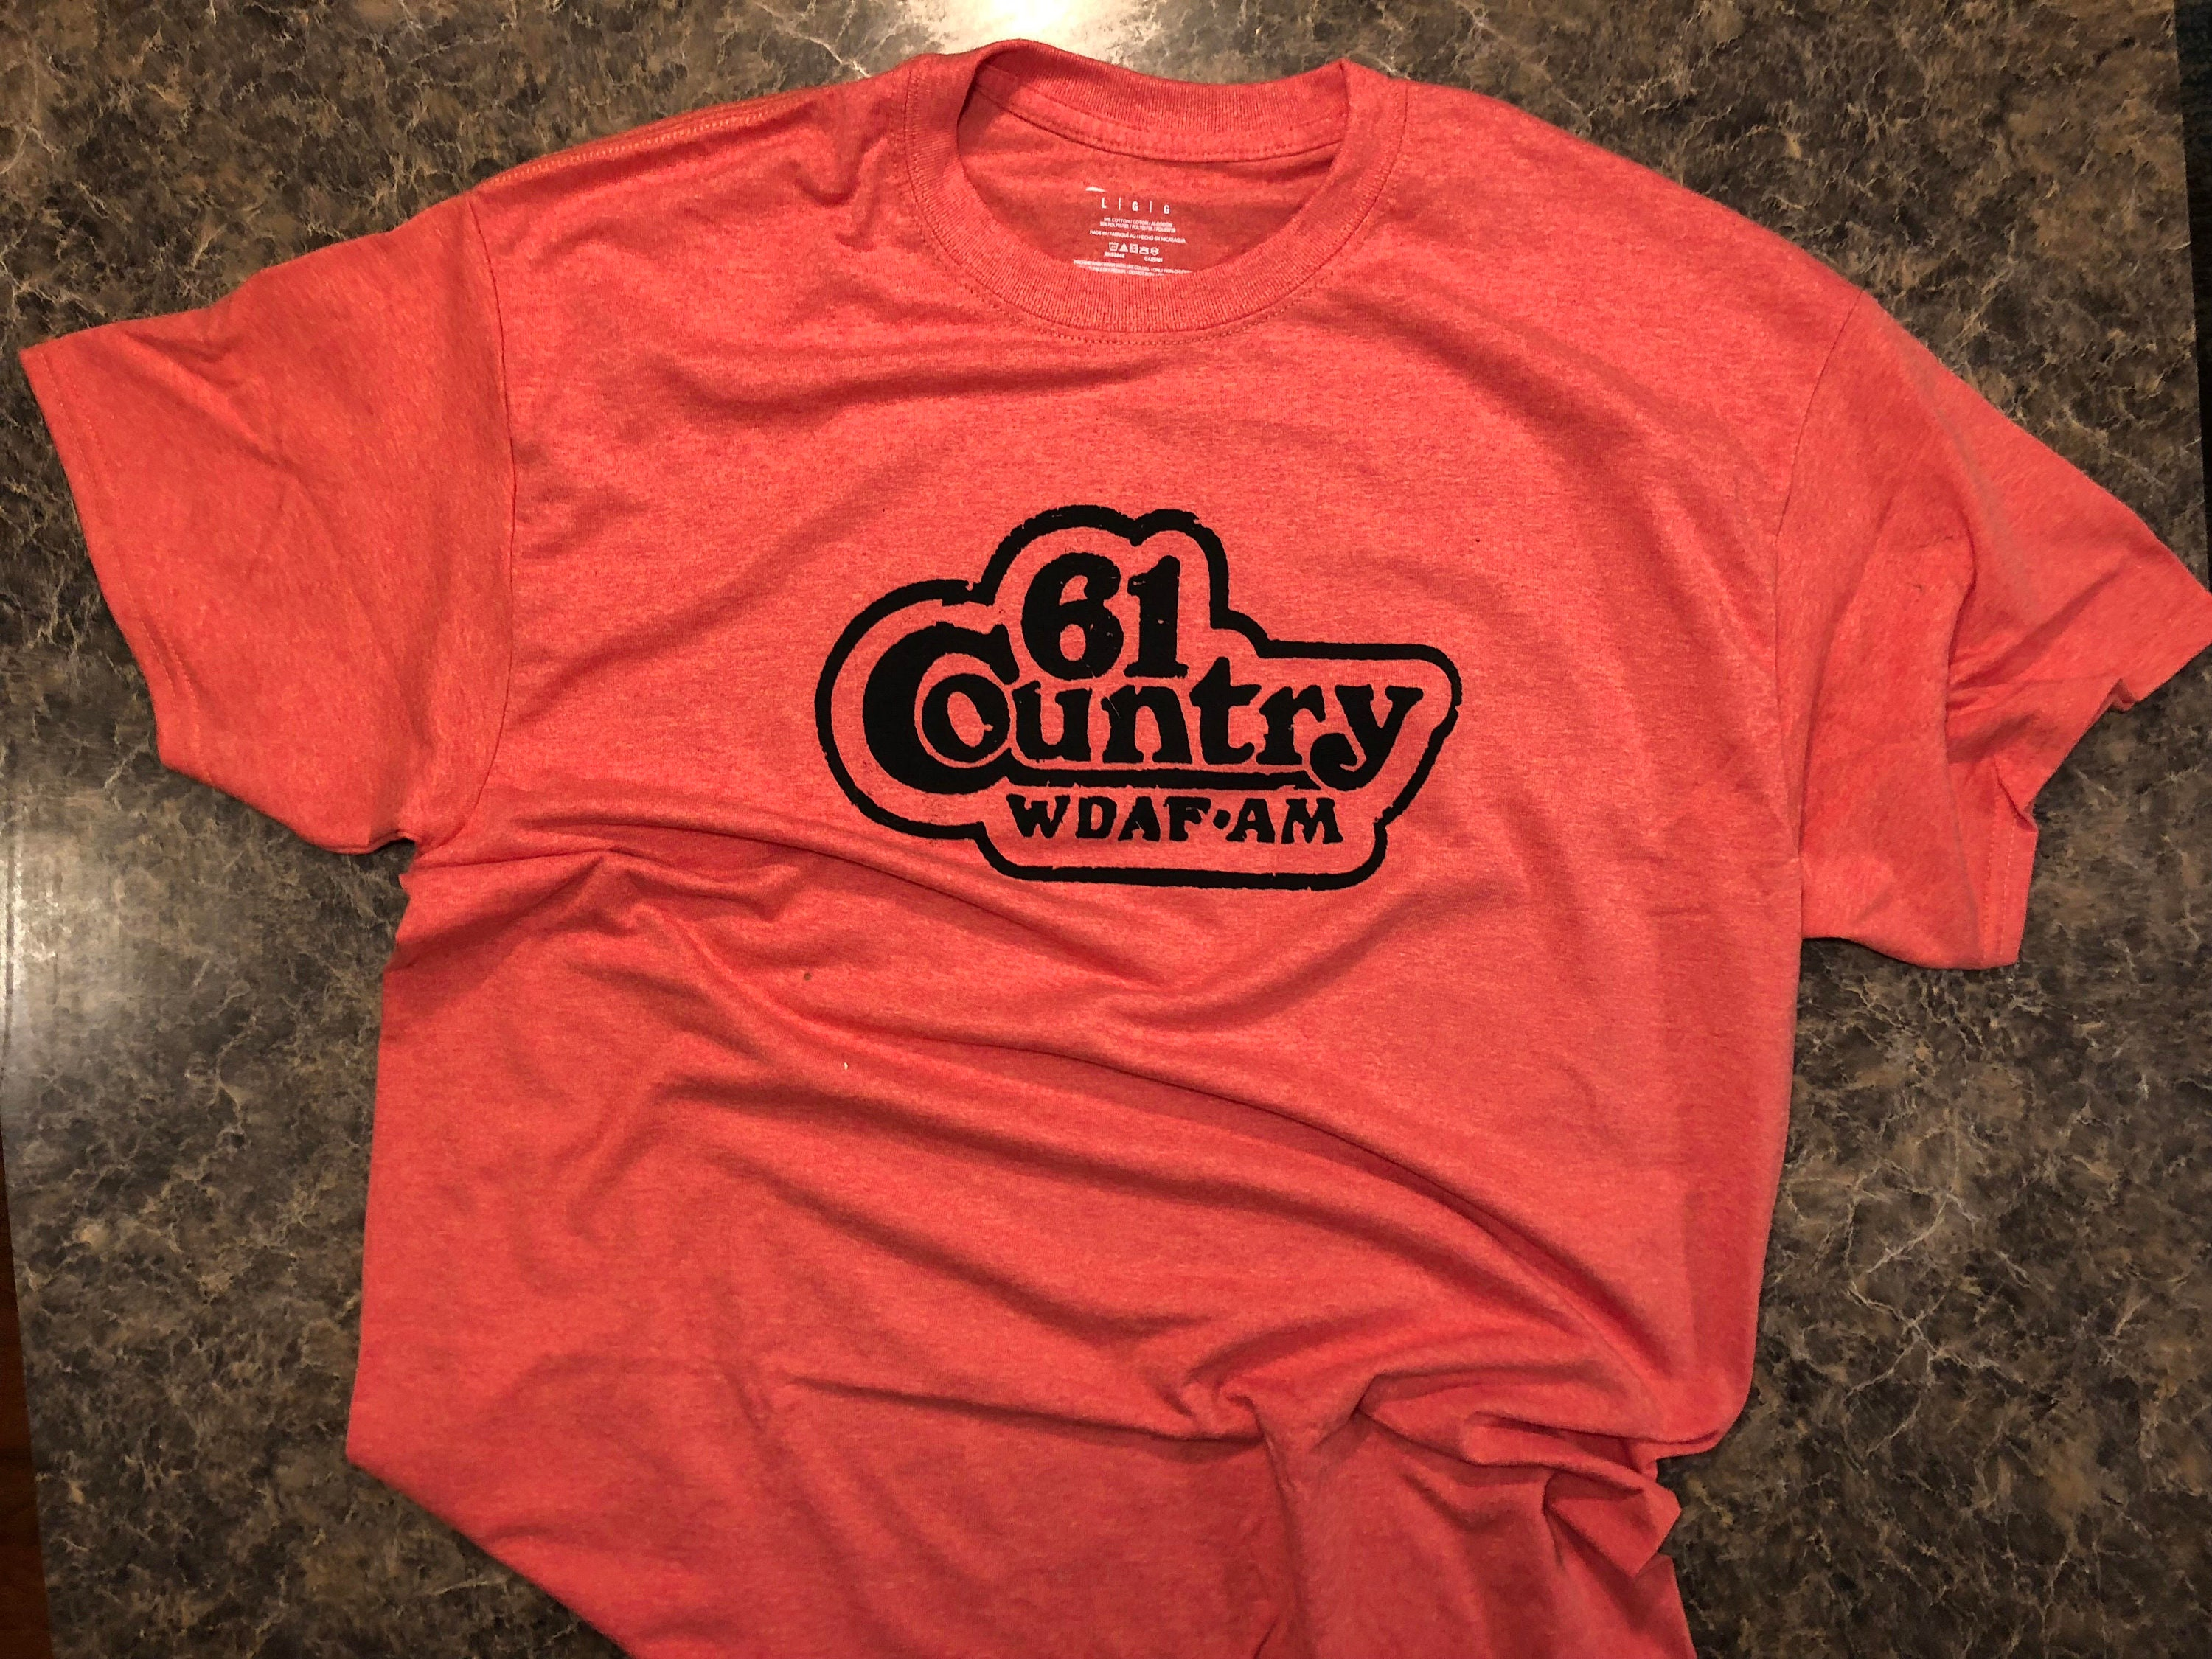 61 Country WDAF Kansas City Radio T Shirt